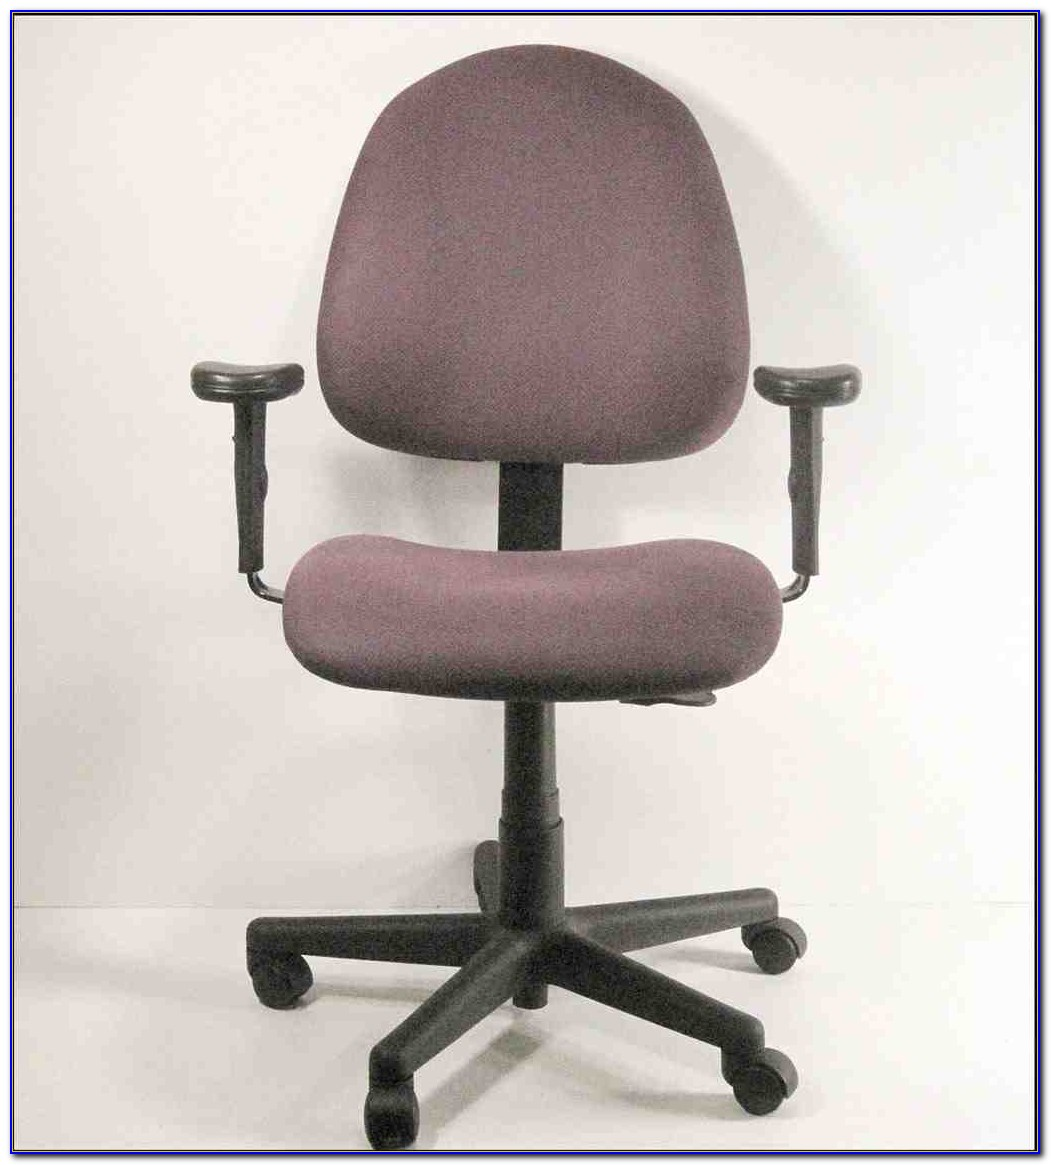 Cushion For Office Chair Back Pain India